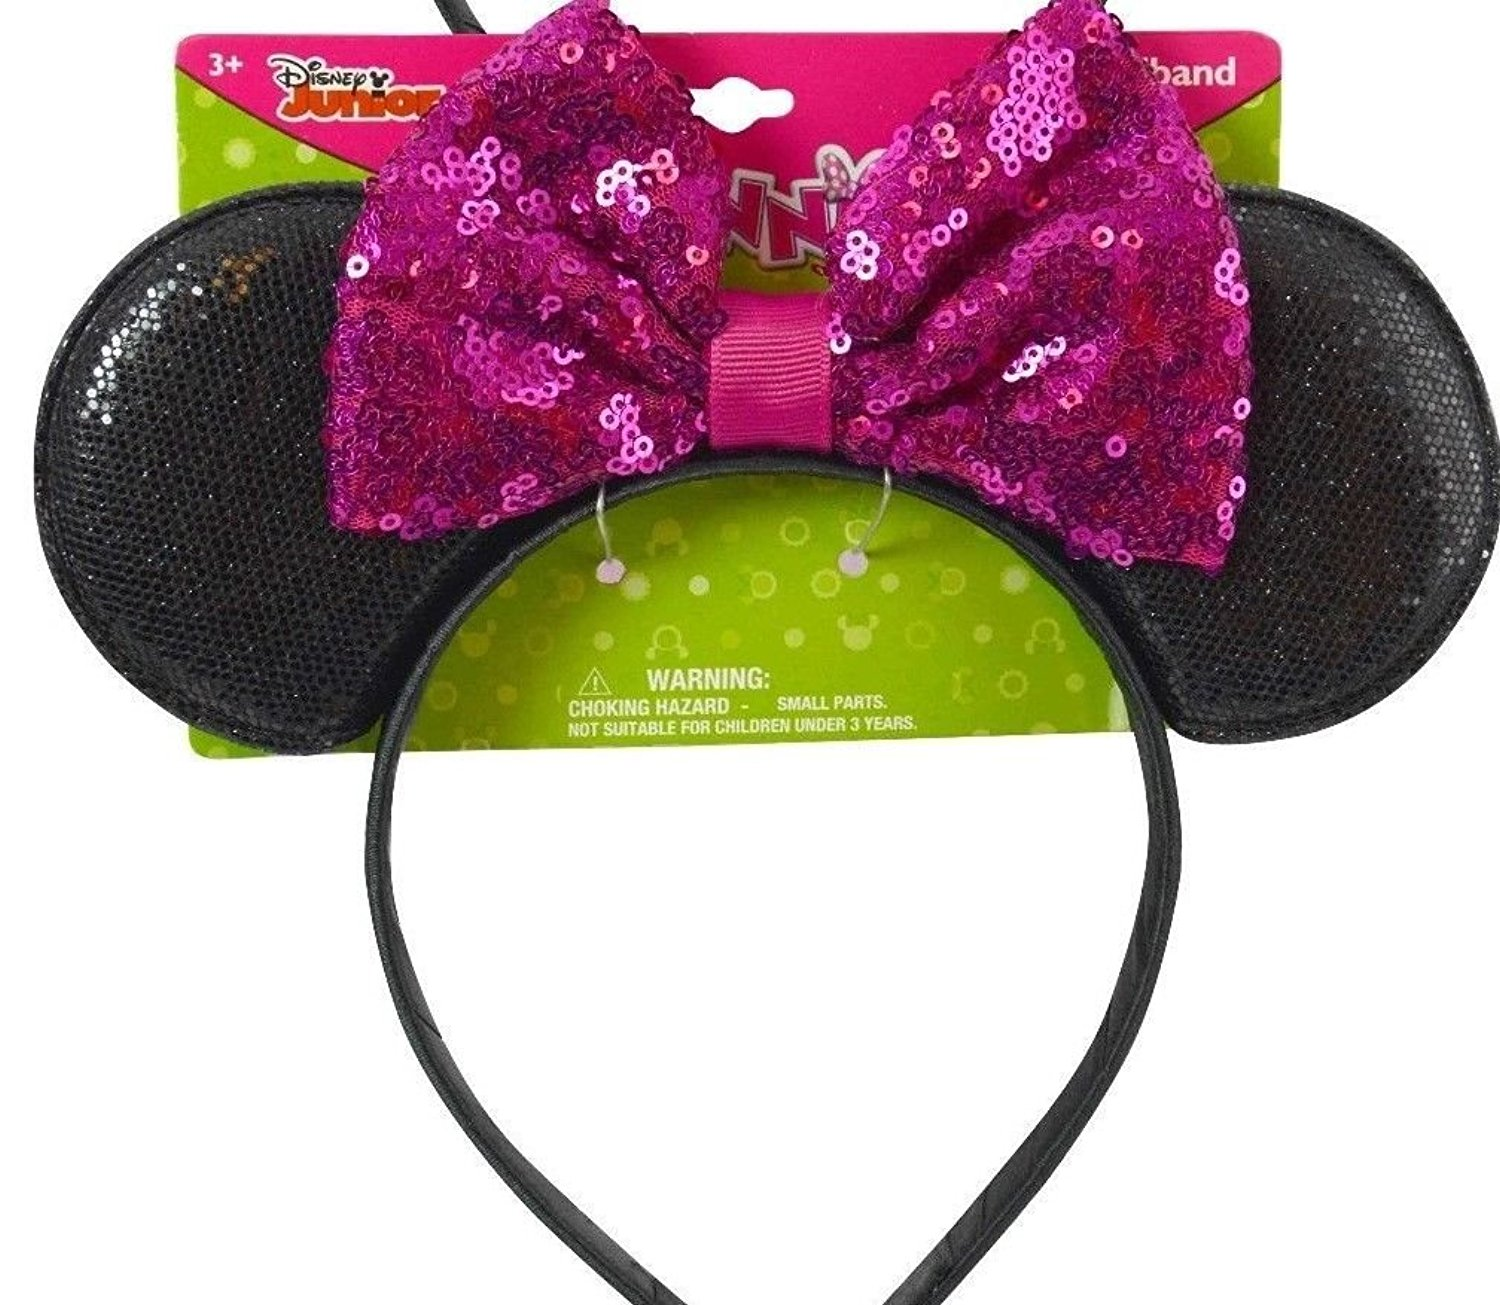 bd47a95c3c9 Buy Disney Minnie Mouse Headband Sequin pink Black Mouse Ears in ...